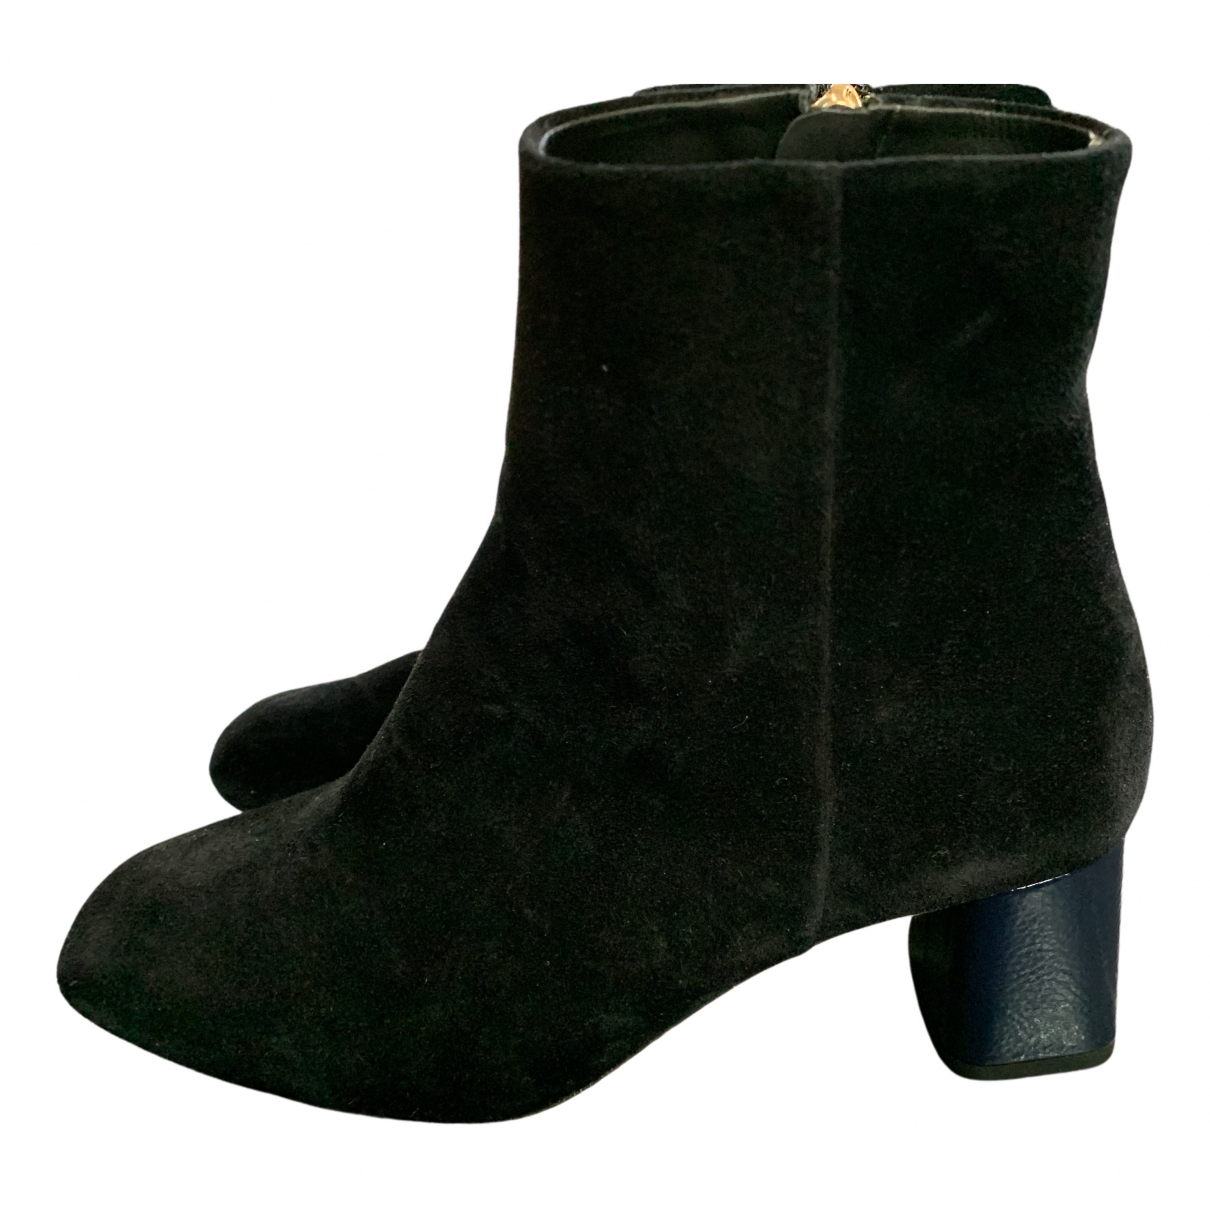 Repetto N Black Leather Ankle boots for Women 37 EU